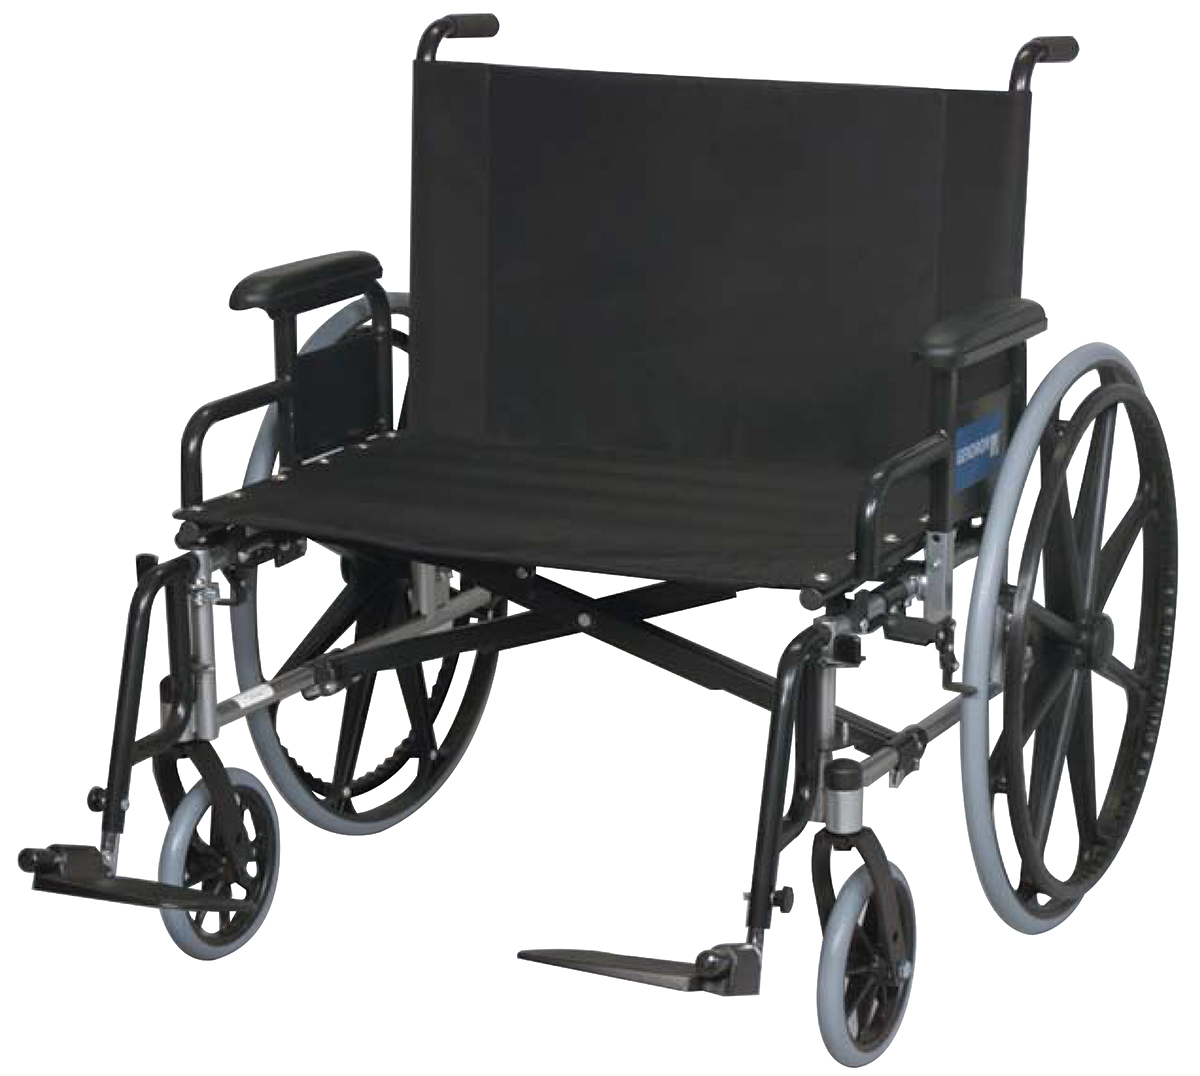 Regency XL 2002 Wheelchairs